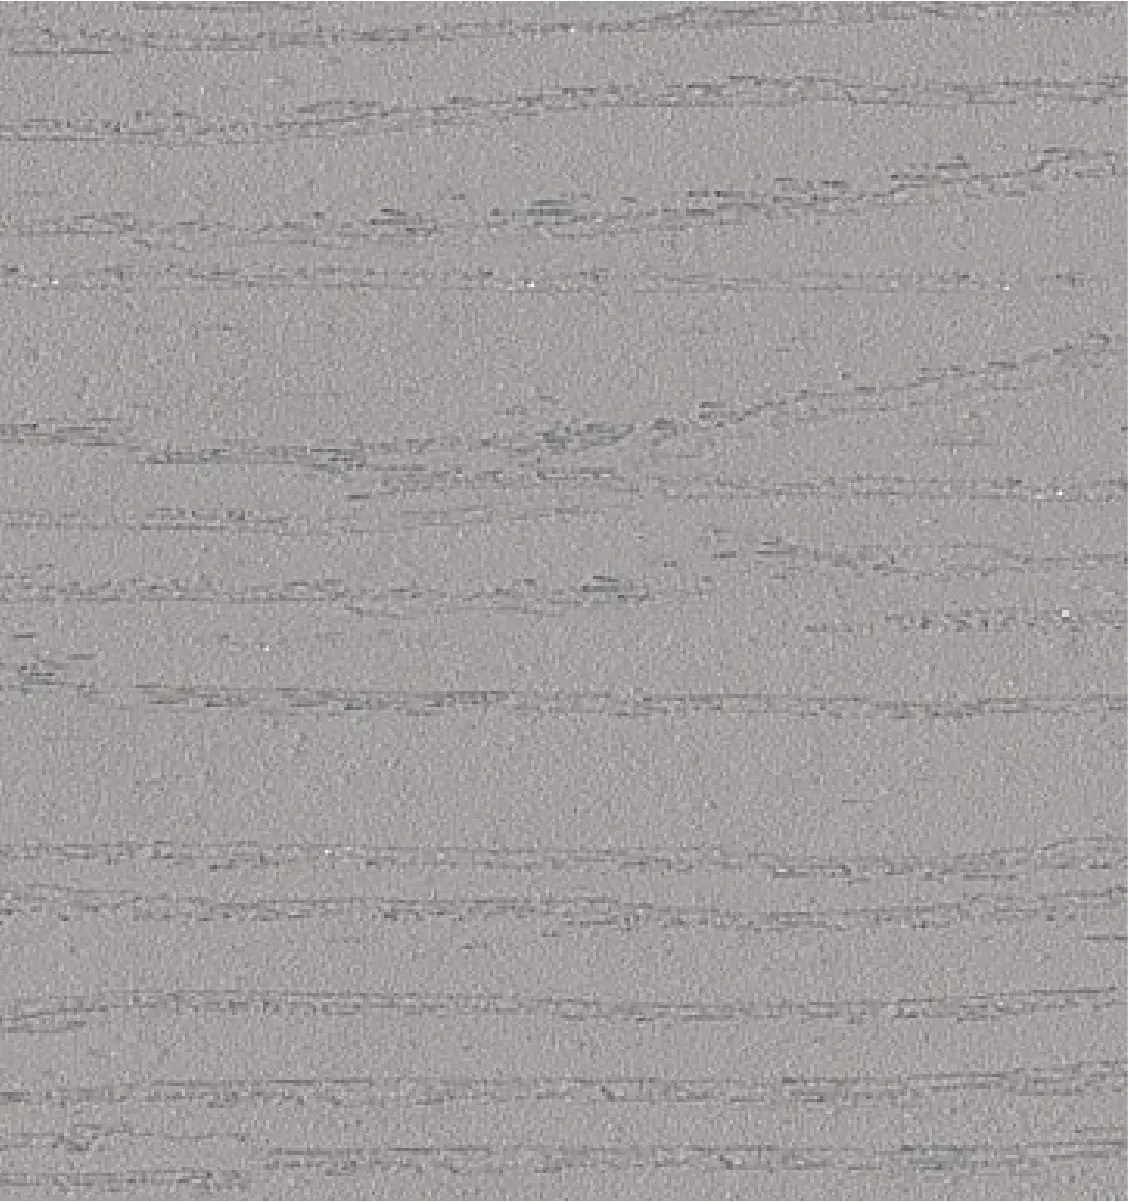 Azek Harvest Collection Slate Gray Deck Grooved 12